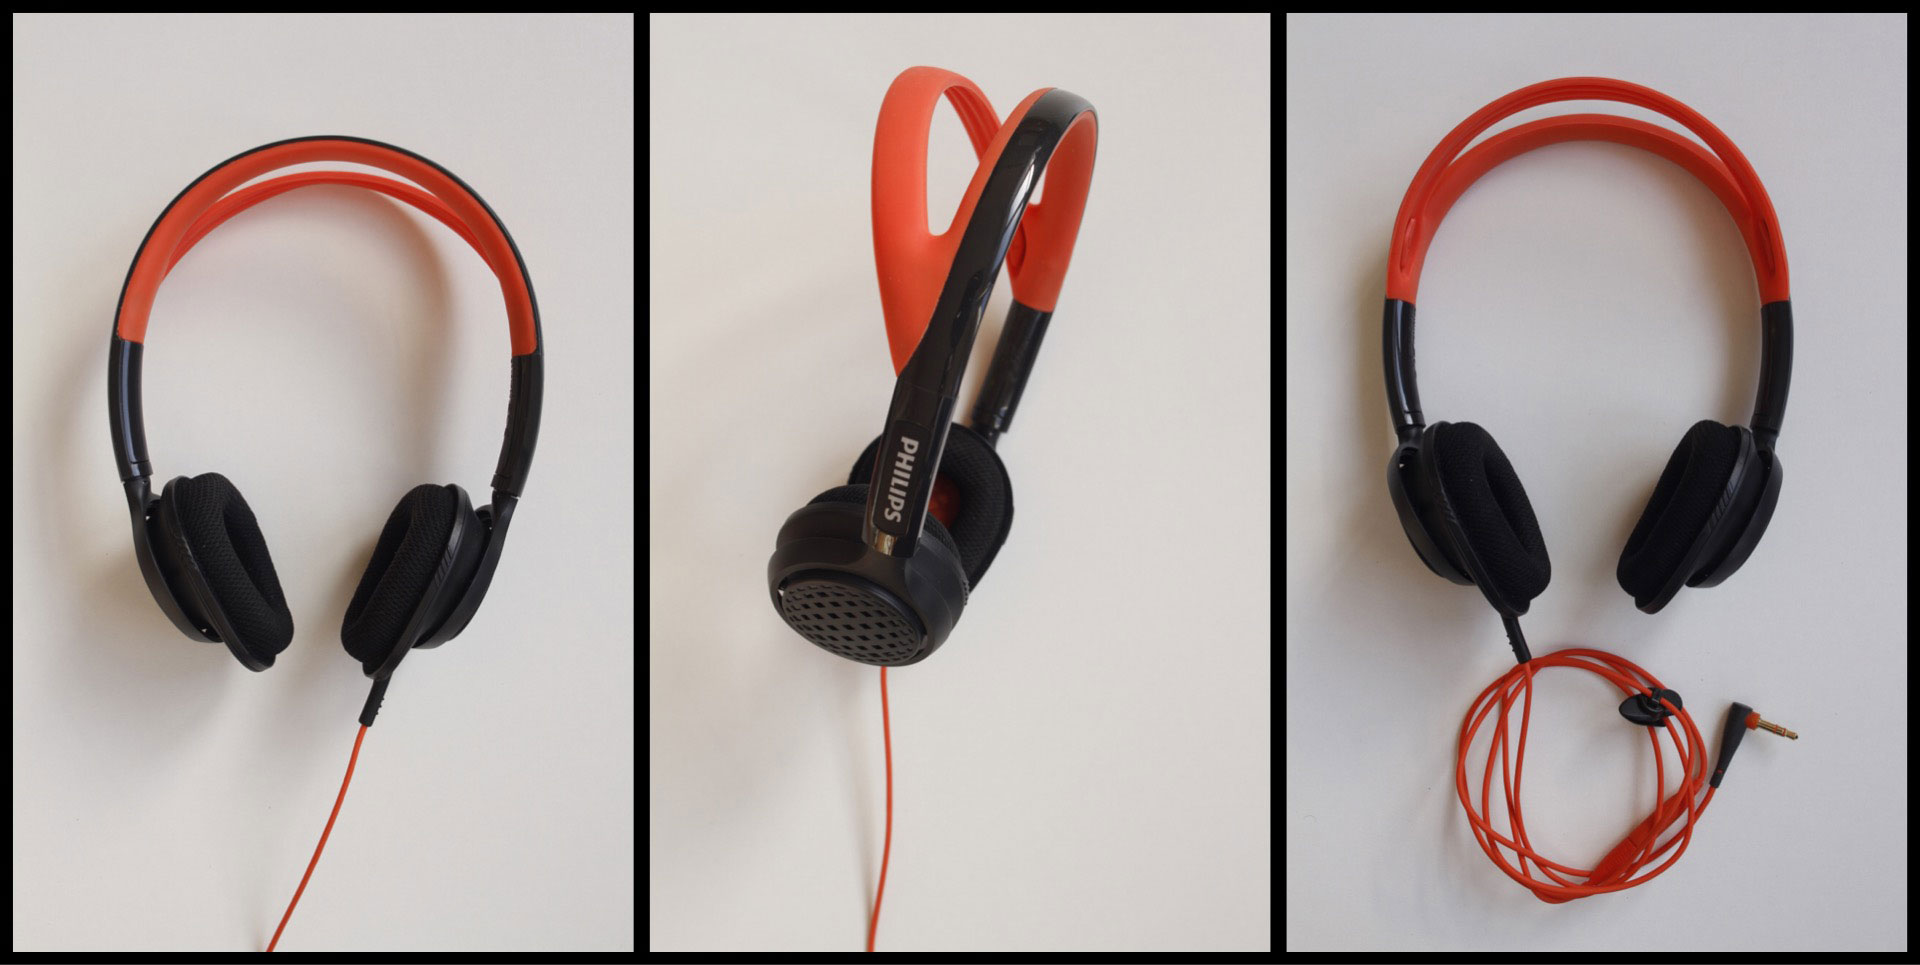 Le casque de sport Philips ActionFit SHQ5200, Ph. Moctar KANE.